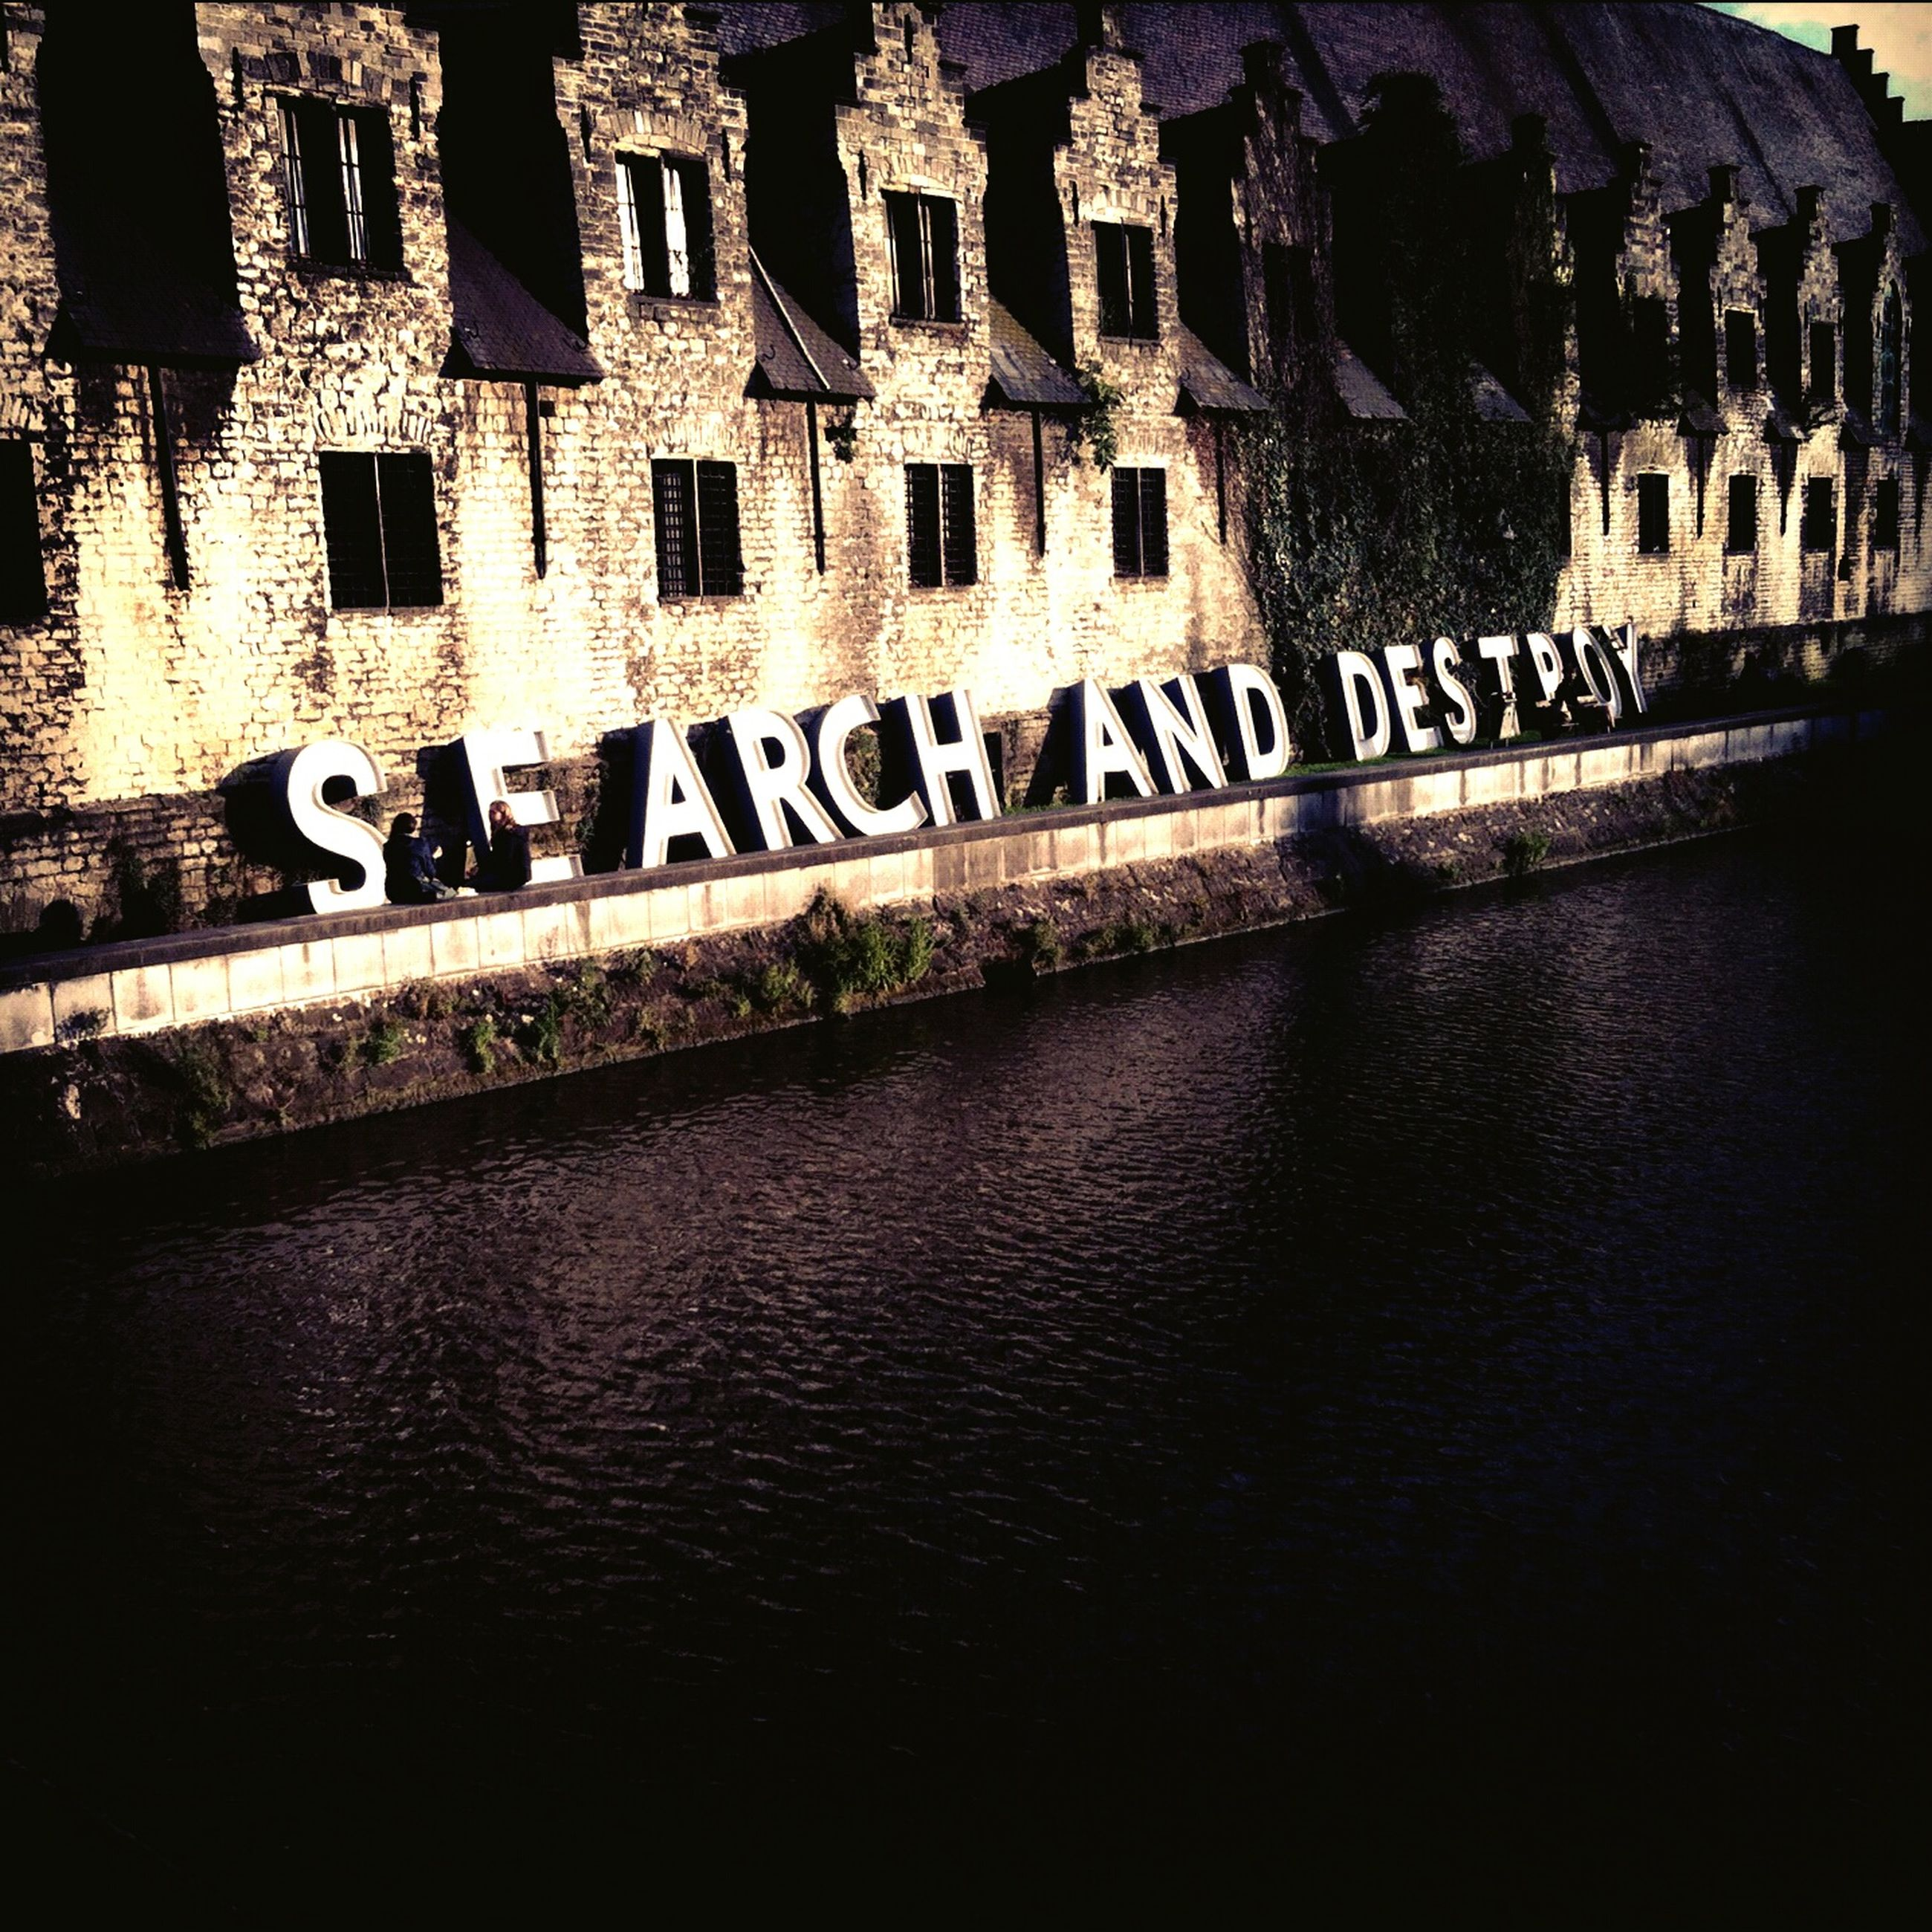 architecture, built structure, water, text, western script, building exterior, waterfront, history, reflection, famous place, communication, no people, river, travel destinations, outdoors, day, old, wall - building feature, building, the past